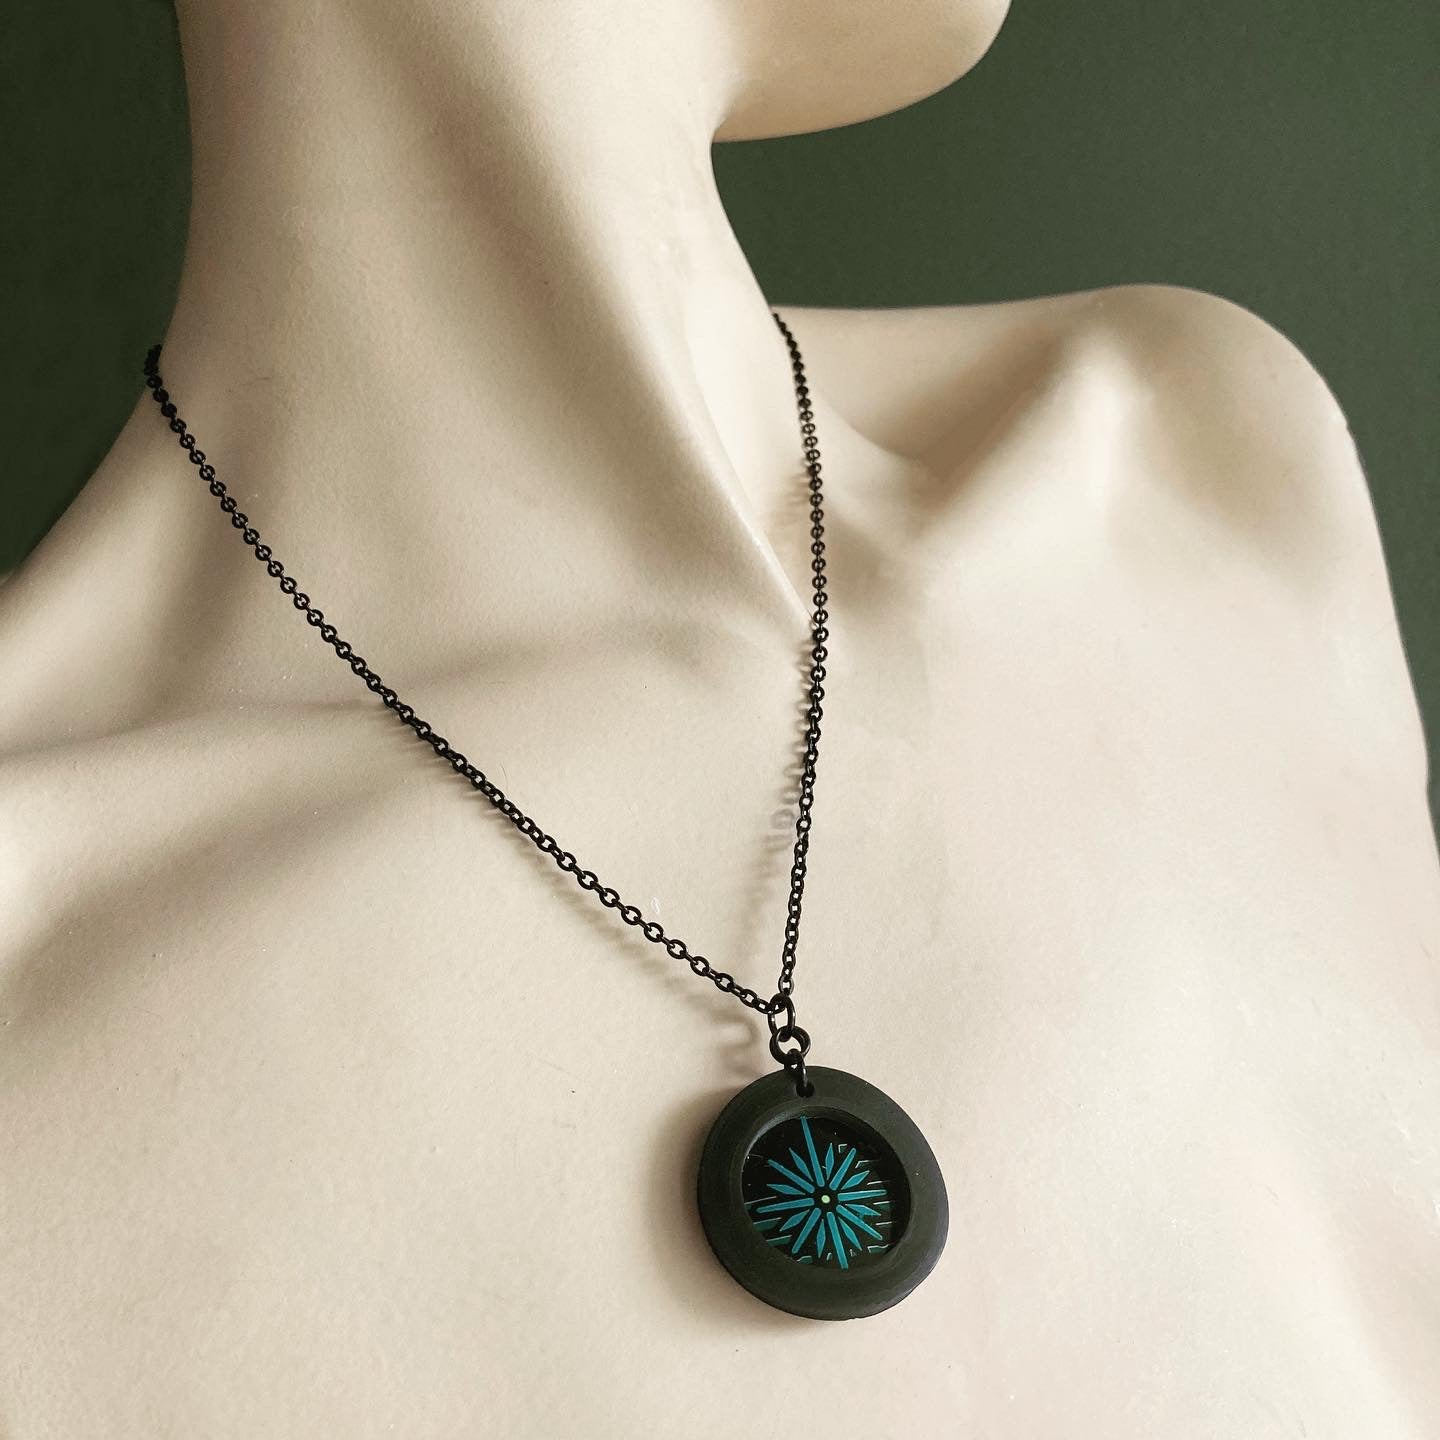 Image of Mini Spot Necklace with Upcycled Stone Brewing Can Artwork